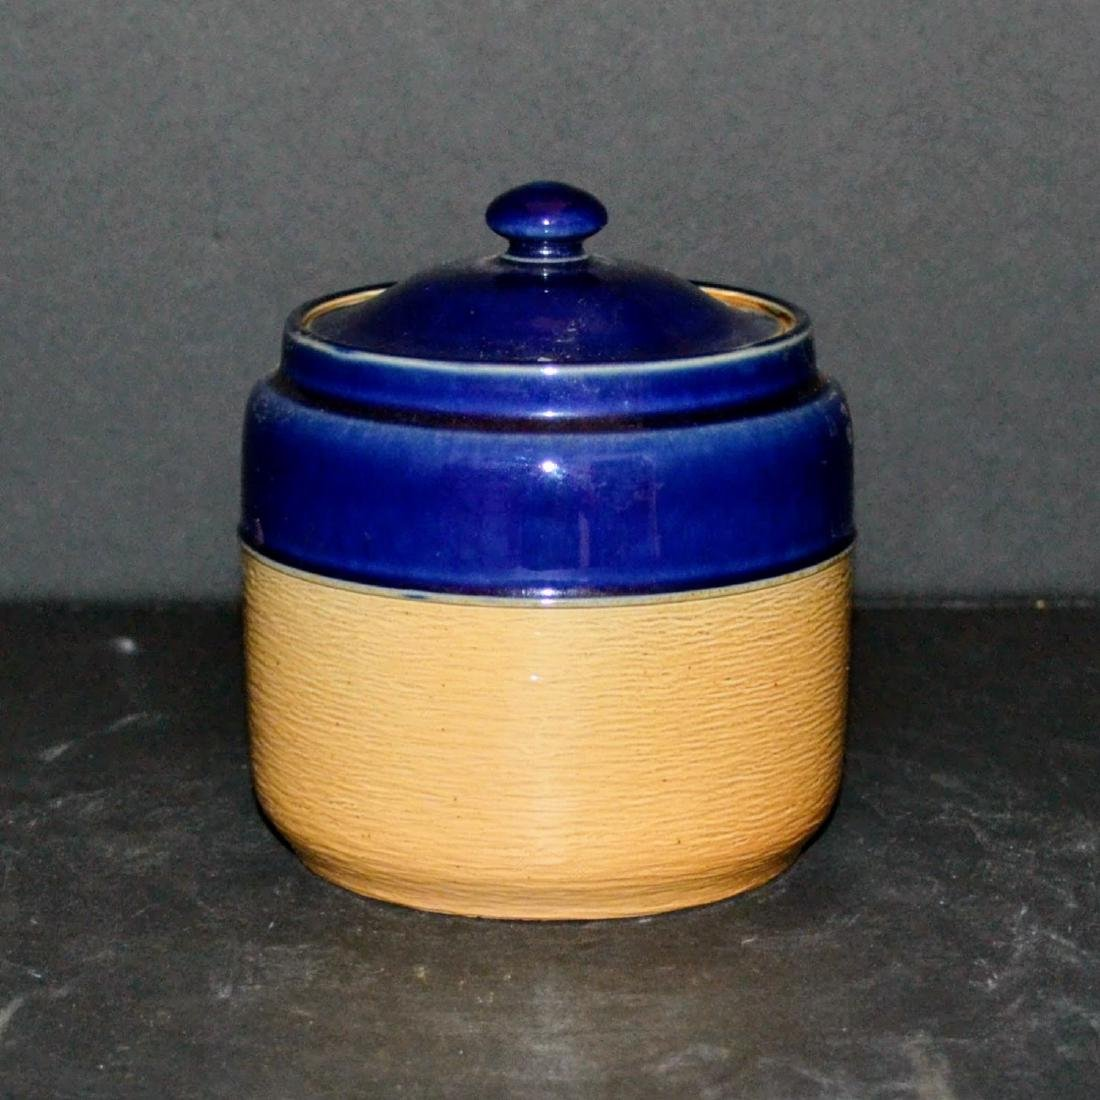 Vintage Doulton & Co Pot with Cover